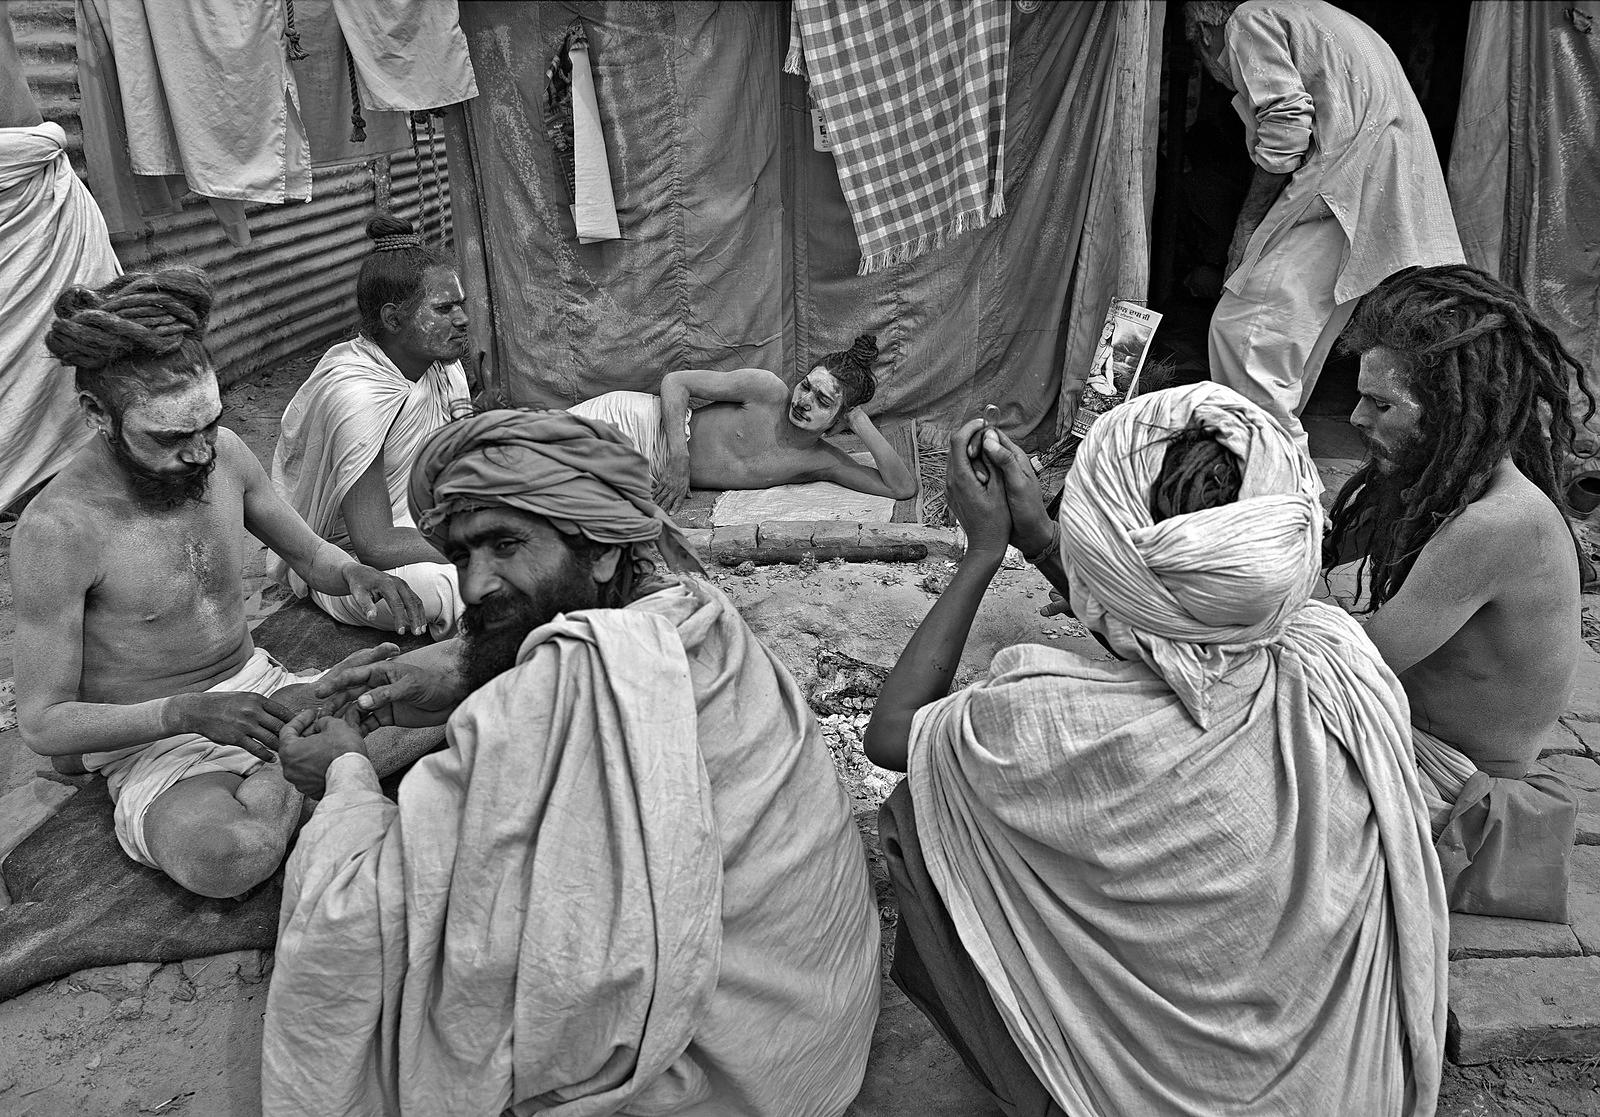 This group portrait of the saints resting, was shot at the kumbh mela, Allahabad